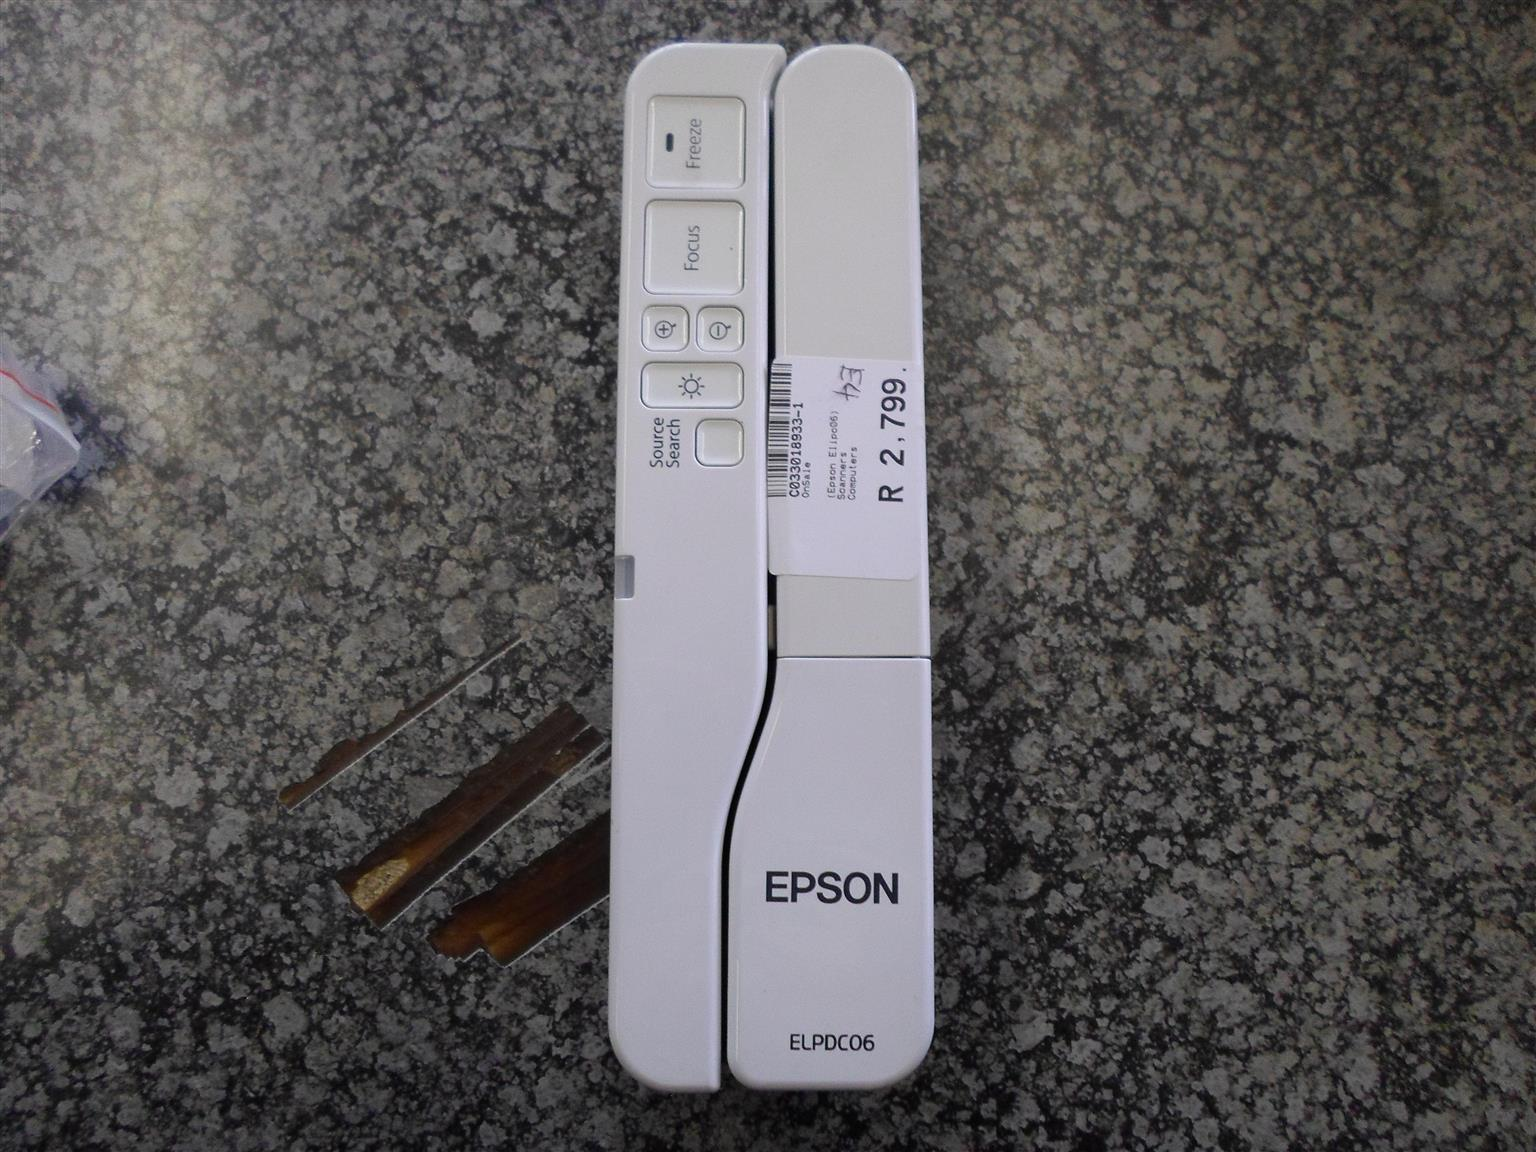 Epson ELPDC06 Document Camera / Scanner